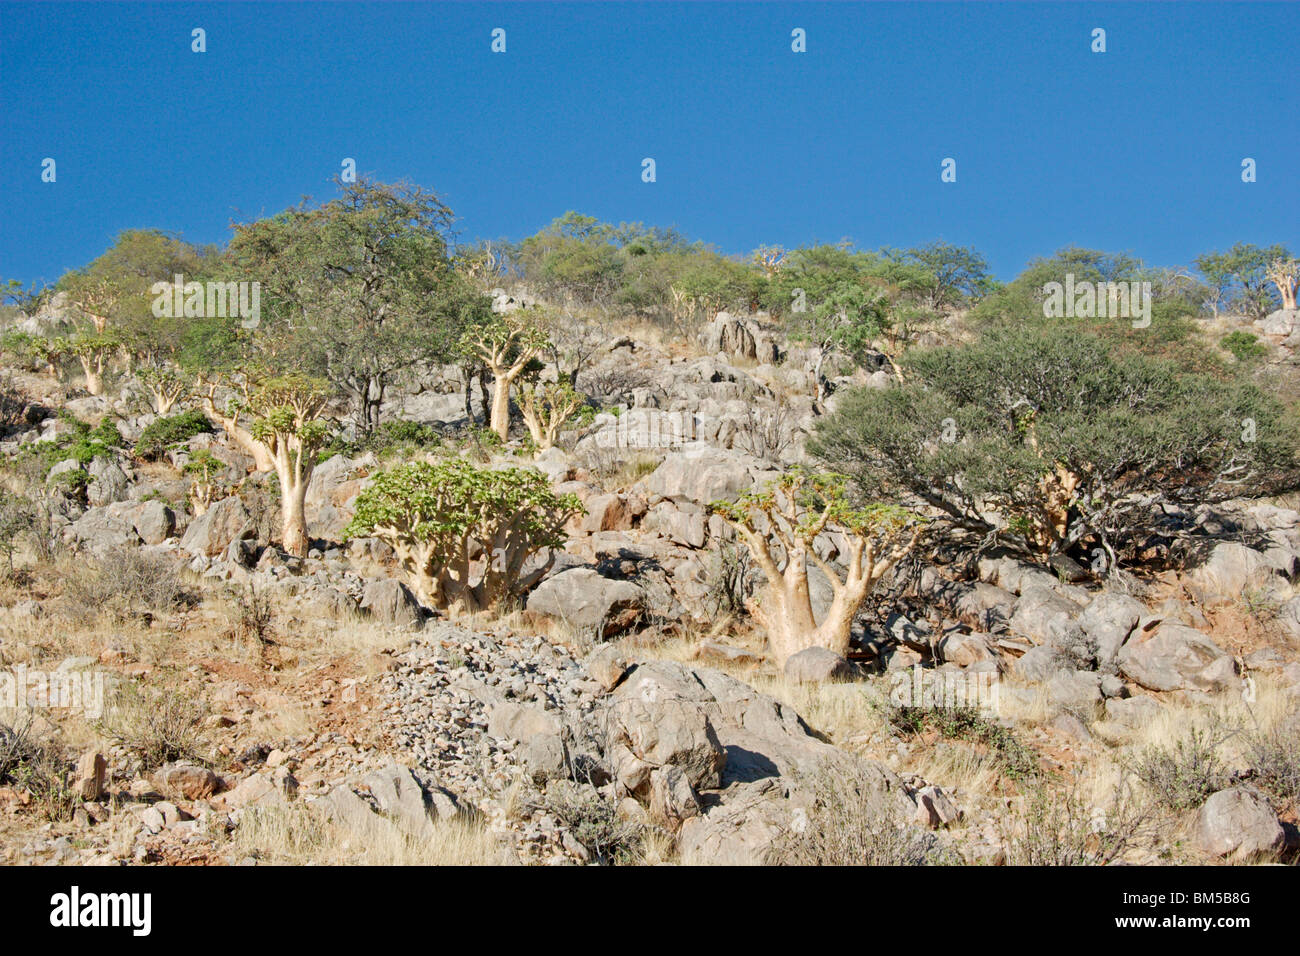 Landscape of Namibia with trees and  blue sky, Africa - Stock Image